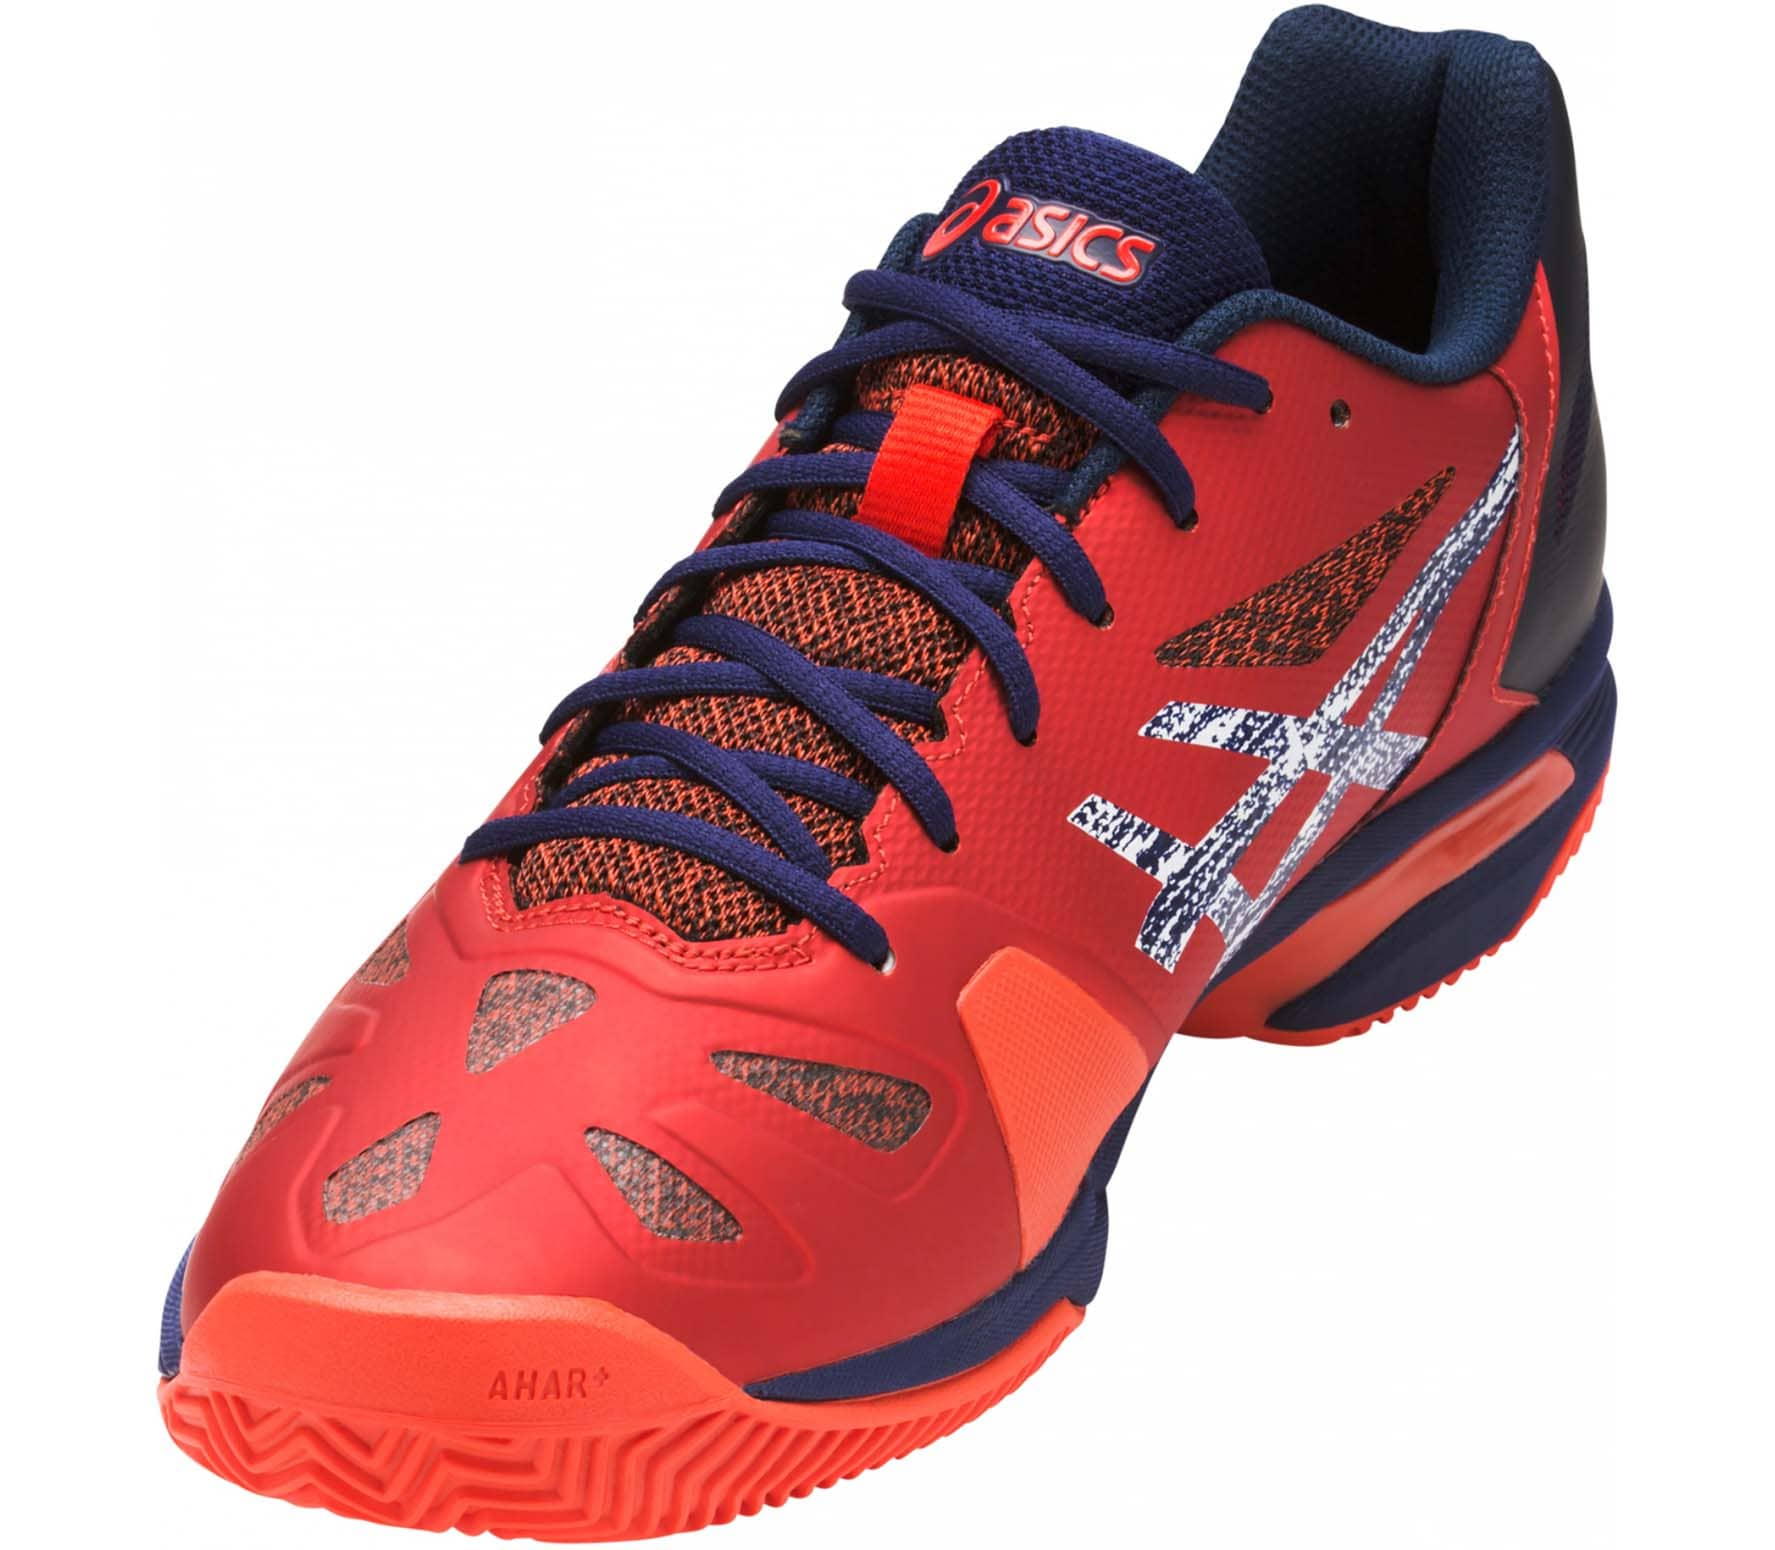 Details about Asics GEL Lima PADEL 2 Men's Padel Tennis Shoes Trainers